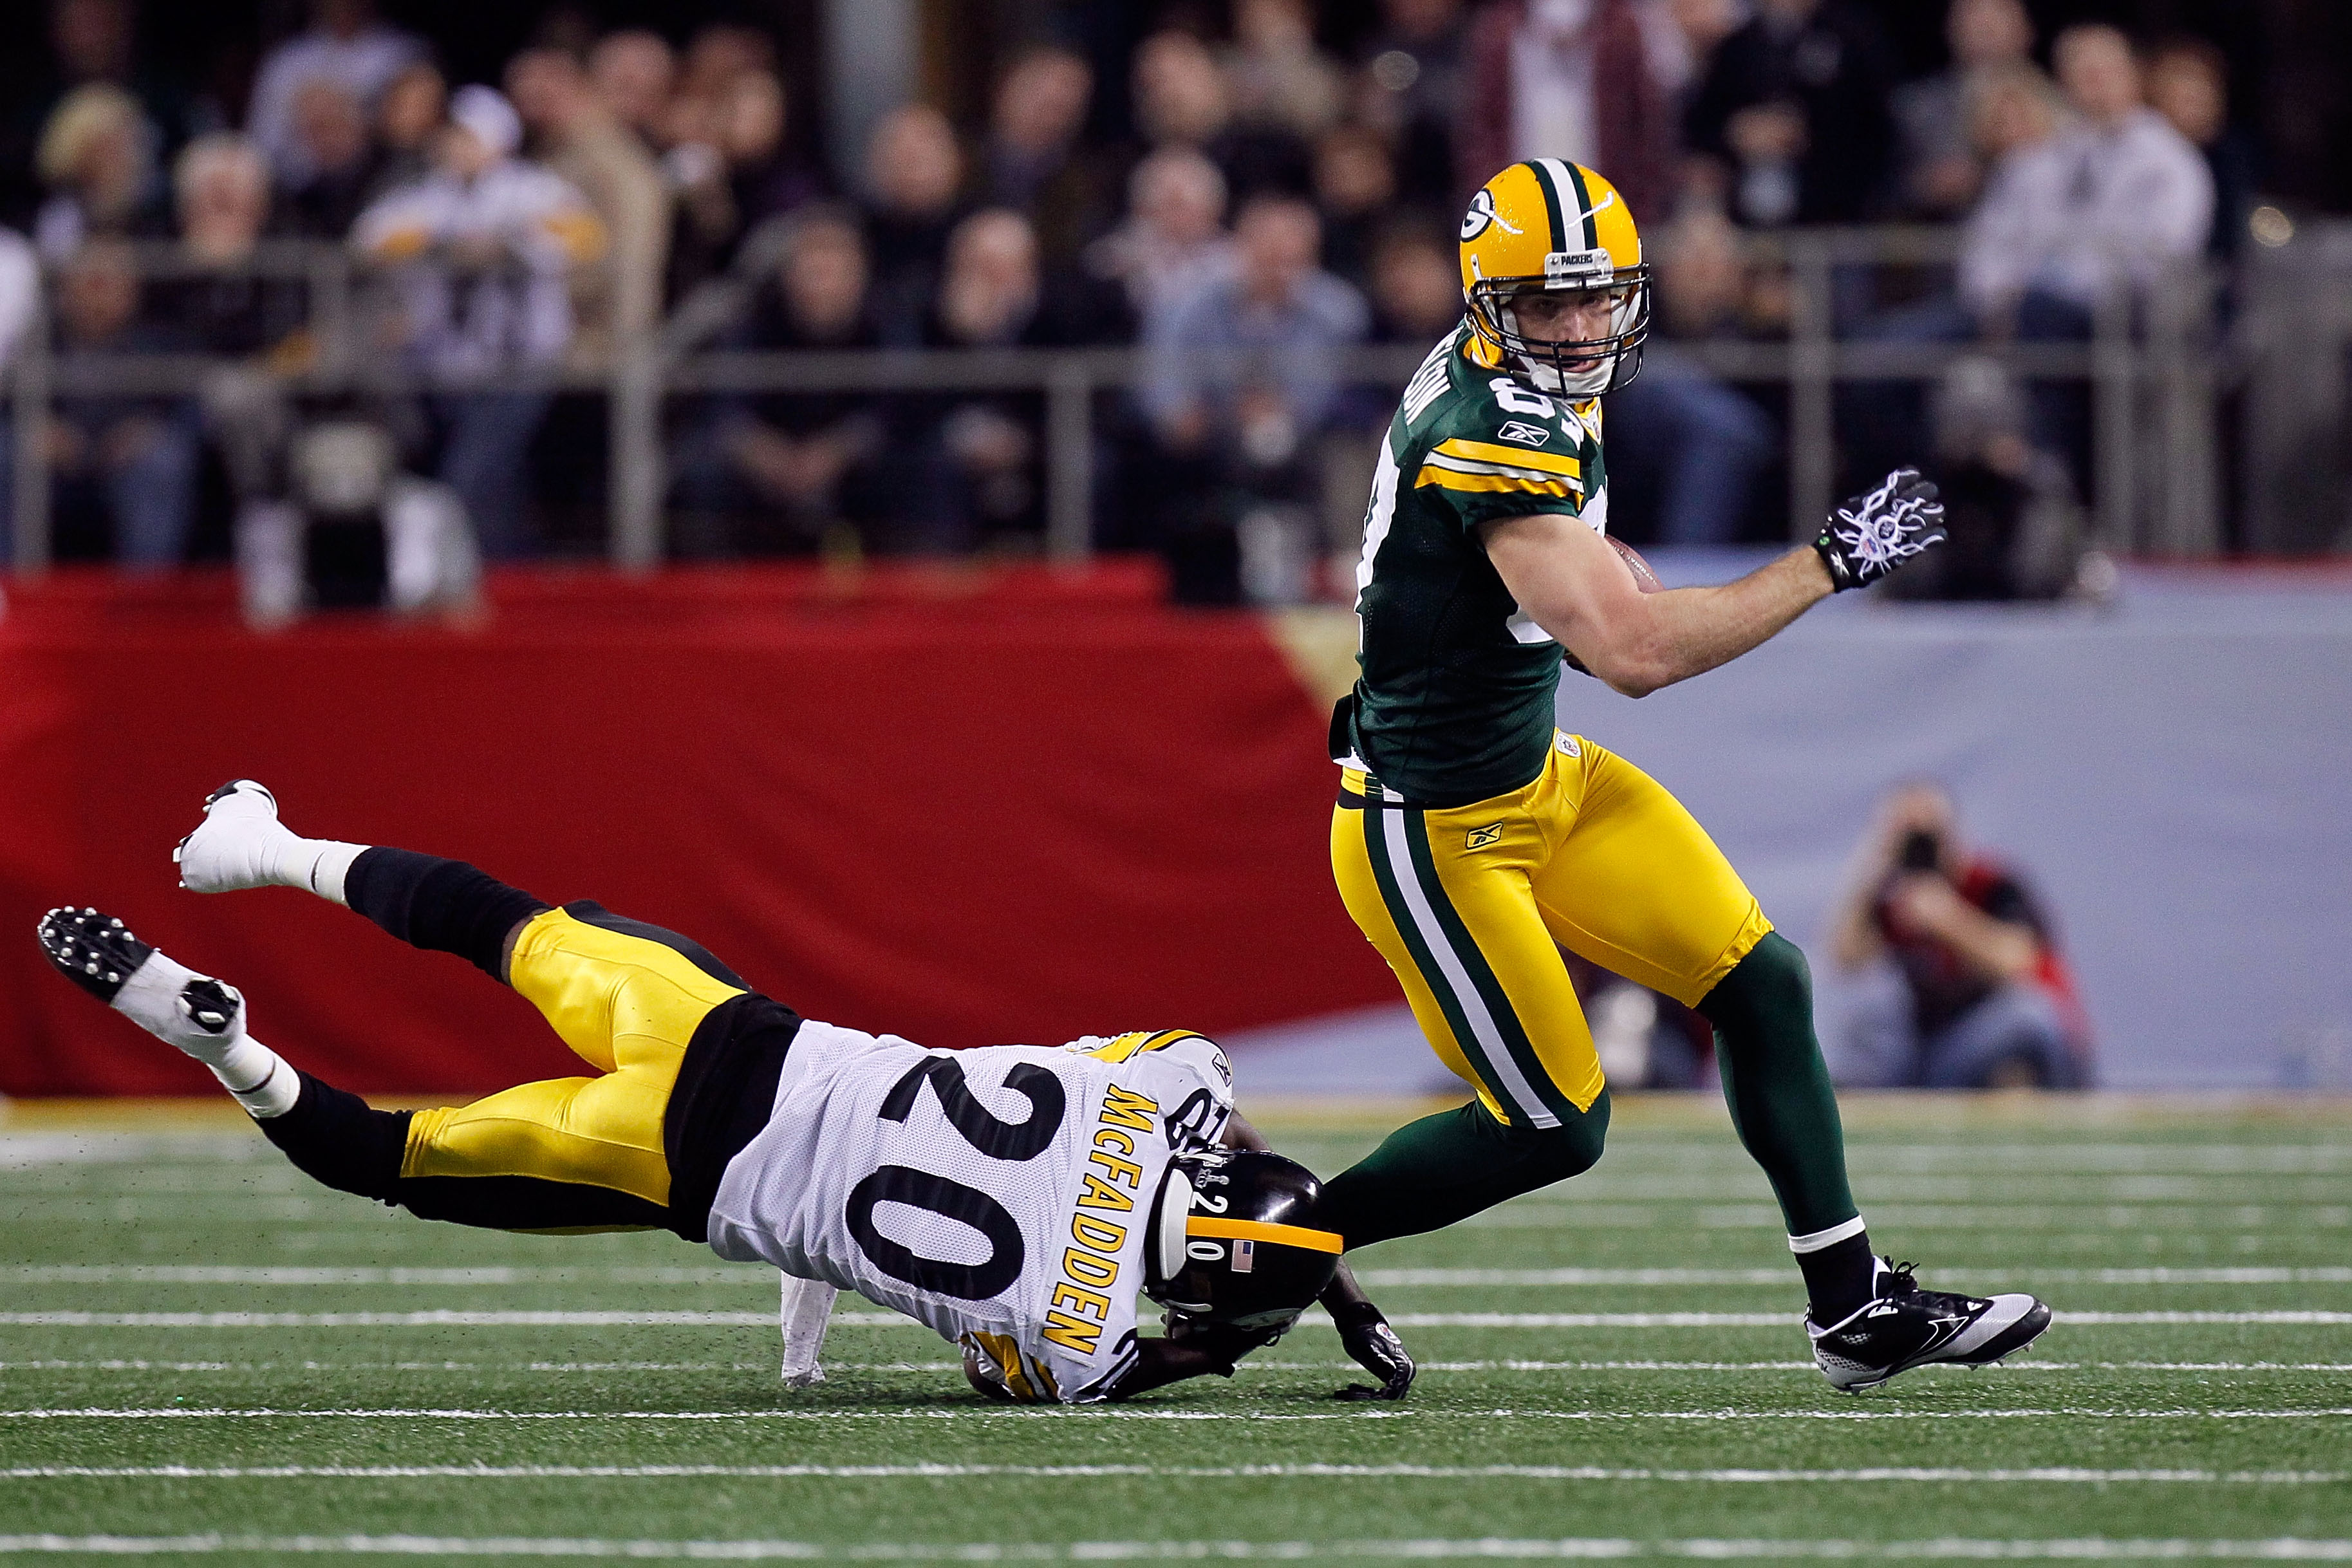 ARLINGTON, TX - FEBRUARY 06: Jordy Nelson #87 of the Green Bay Packers avoids being tackled by Bryant McFadden #20 of the Pittsburgh Steelers during Super Bowl XLV at Cowboys Stadium on February 6, 2011 in Arlington, Texas.  (Photo by Kevin C. Cox/Getty I